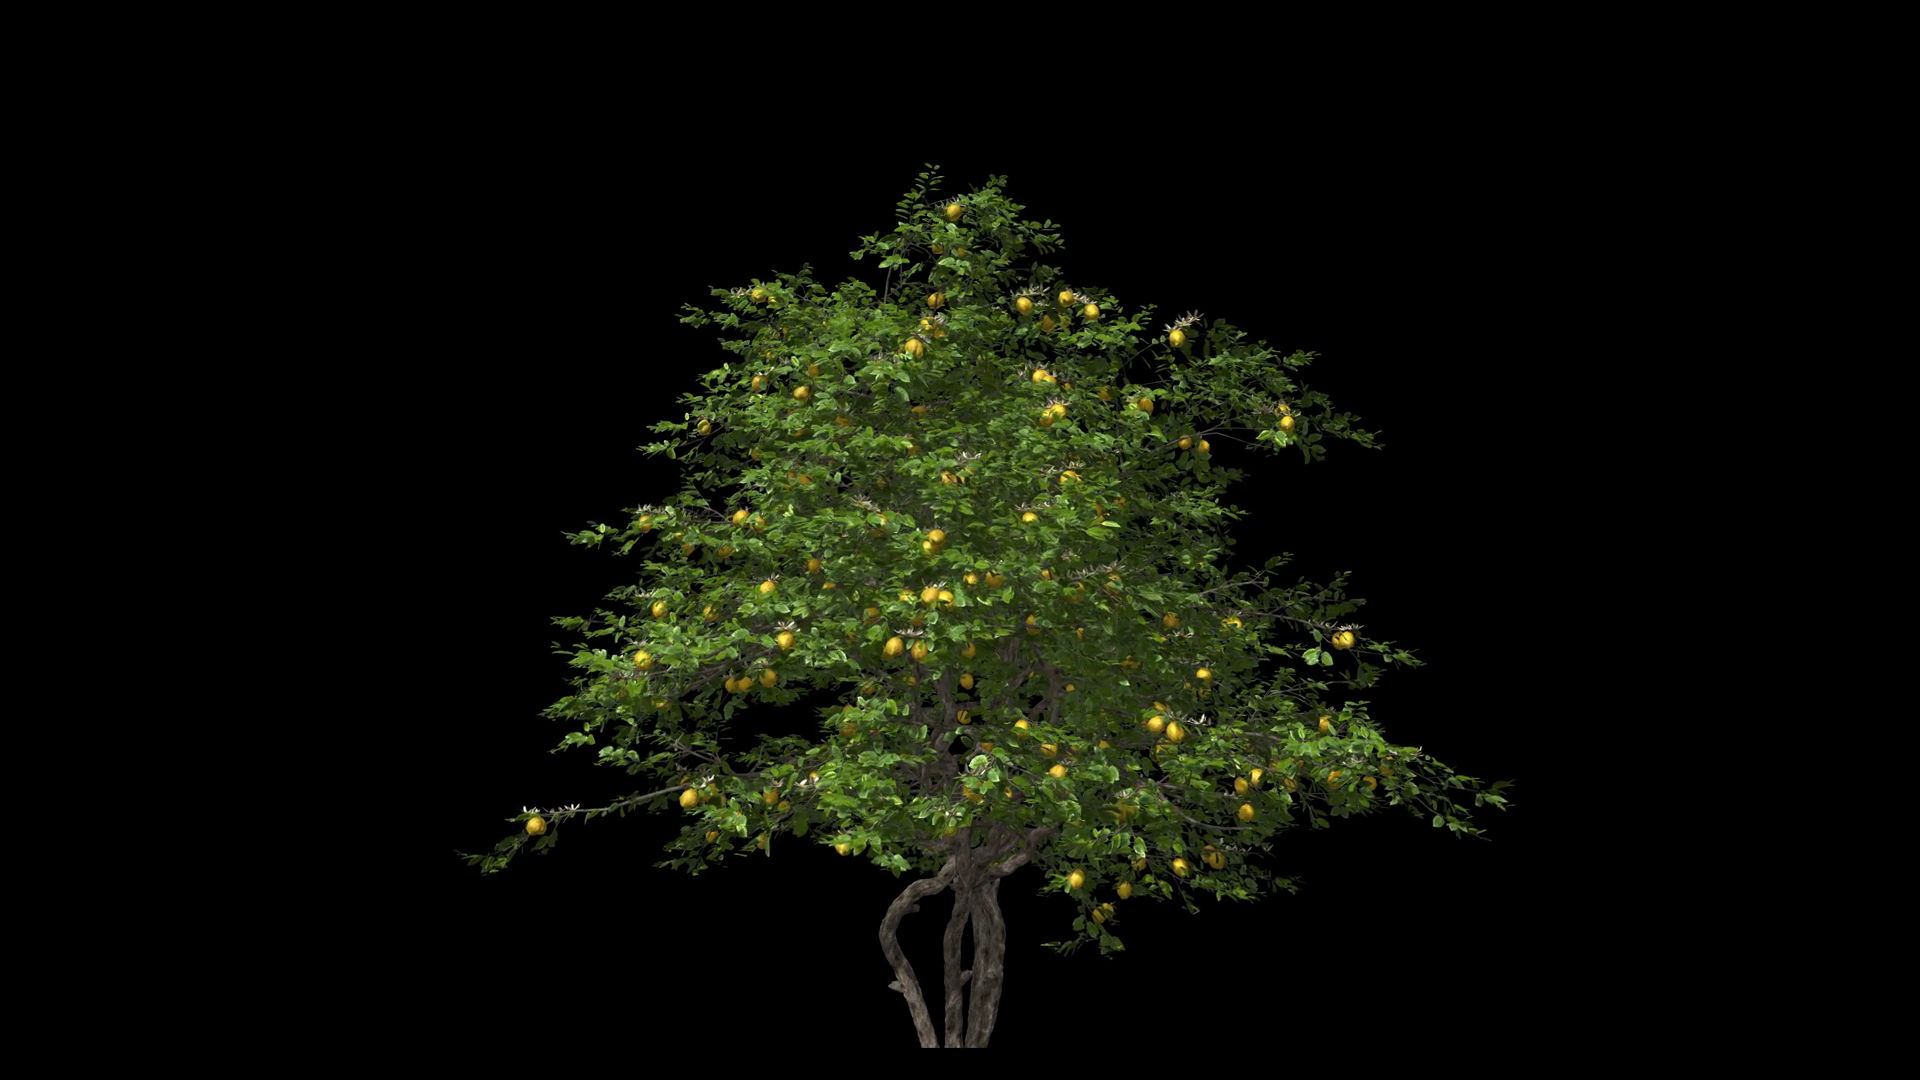 Lemon tree in the wind Format MOV, codec png with alpha channel.